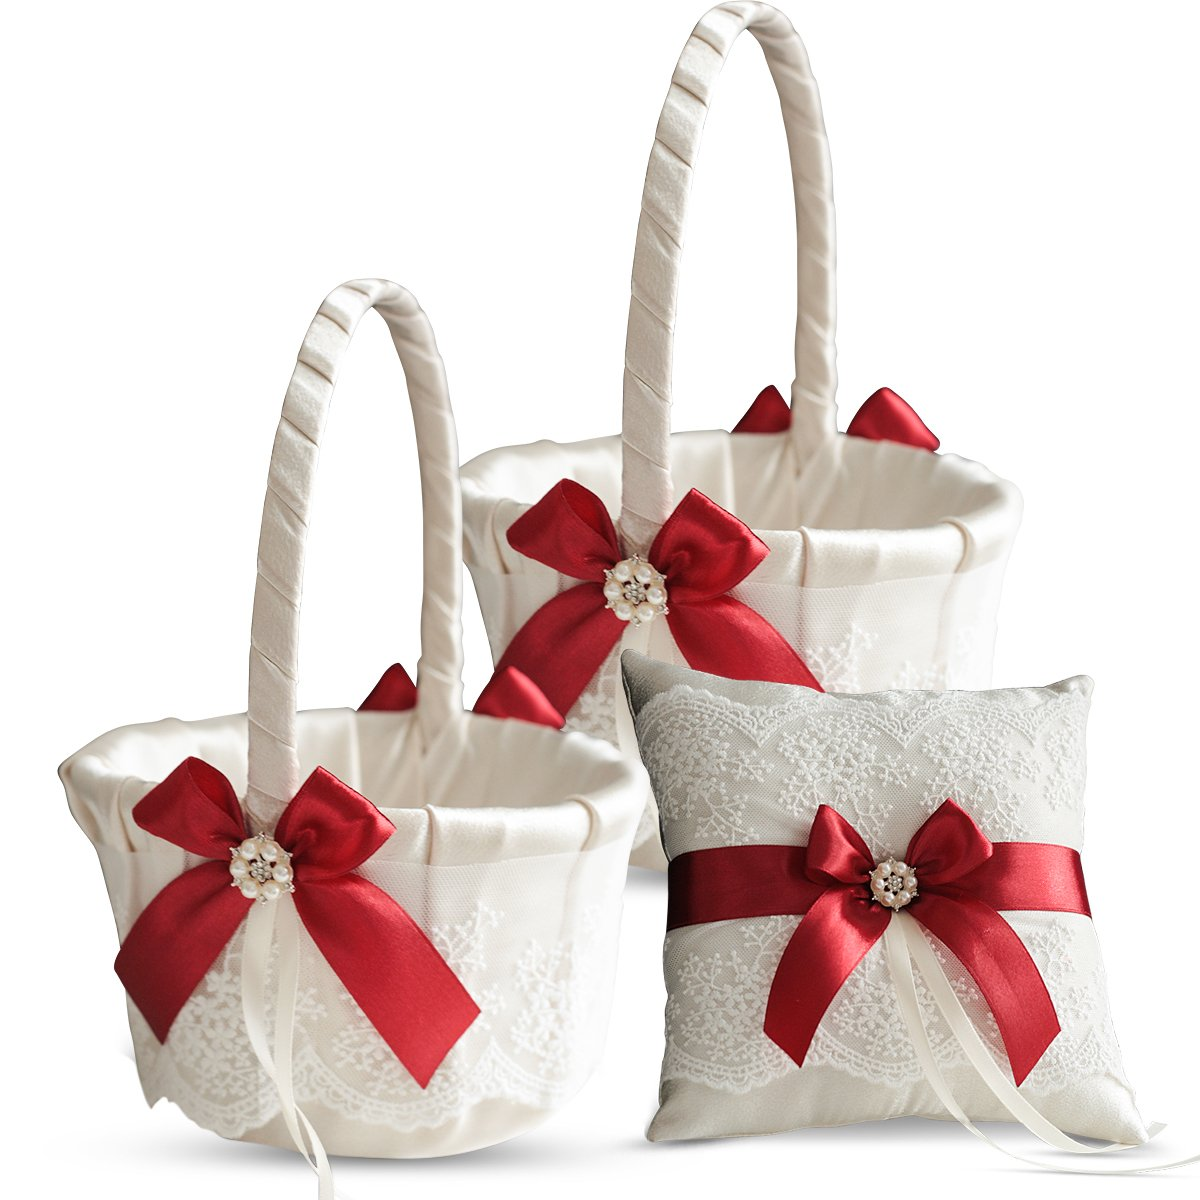 Alex Emotions Ivory Ring Bearer Pillow and Basket Set | Lace Collection | Flower Girl & Welcome Basket for Guest | Handmade Wedding Baskets & Pillows (Scarlet RED)